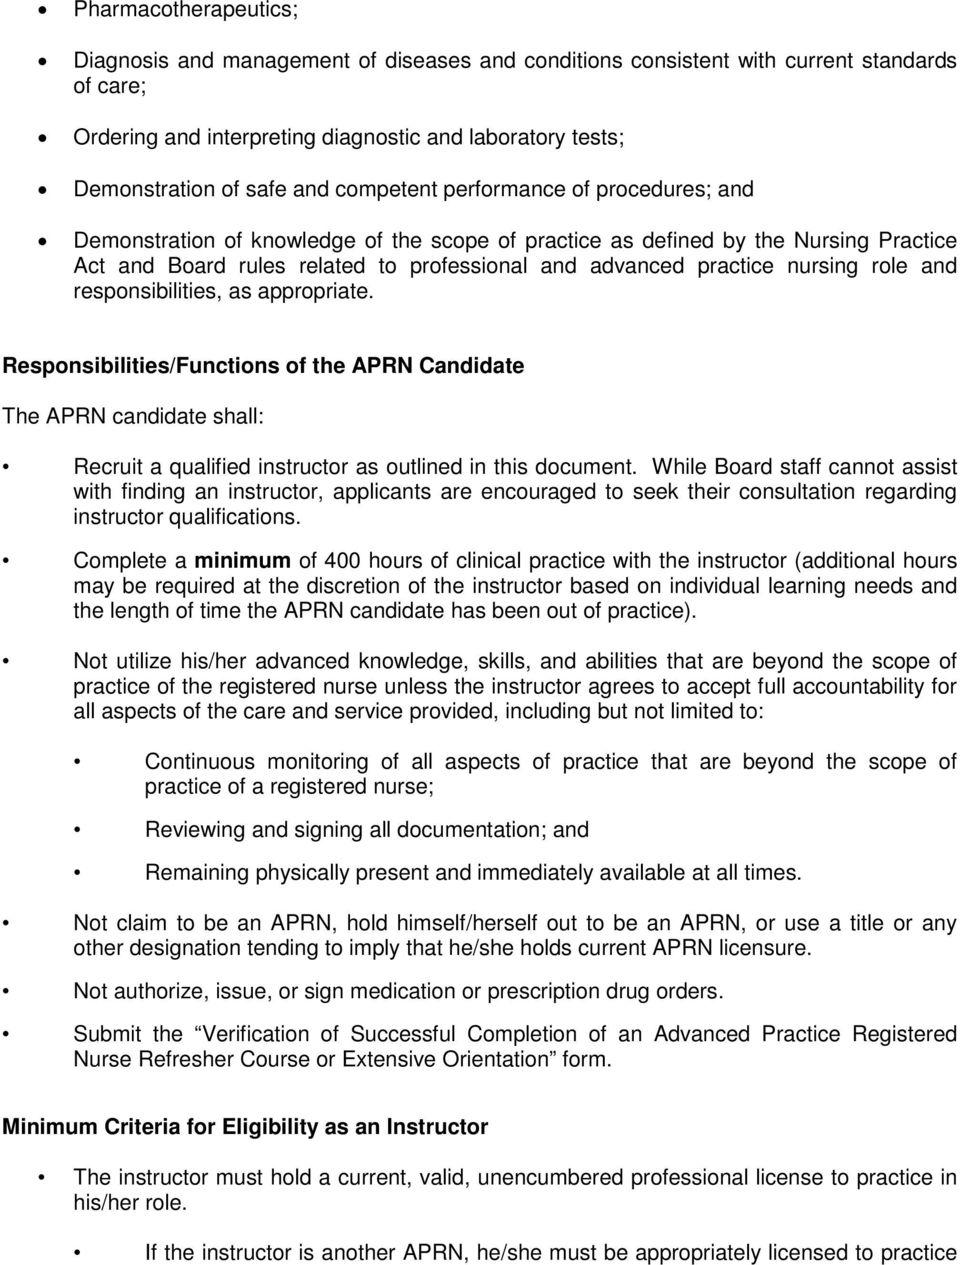 nursing role and responsibilities, as appropriate. Responsibilities/Functions of the APRN Candidate The APRN candidate shall: Recruit a qualified instructor as outlined in this document.